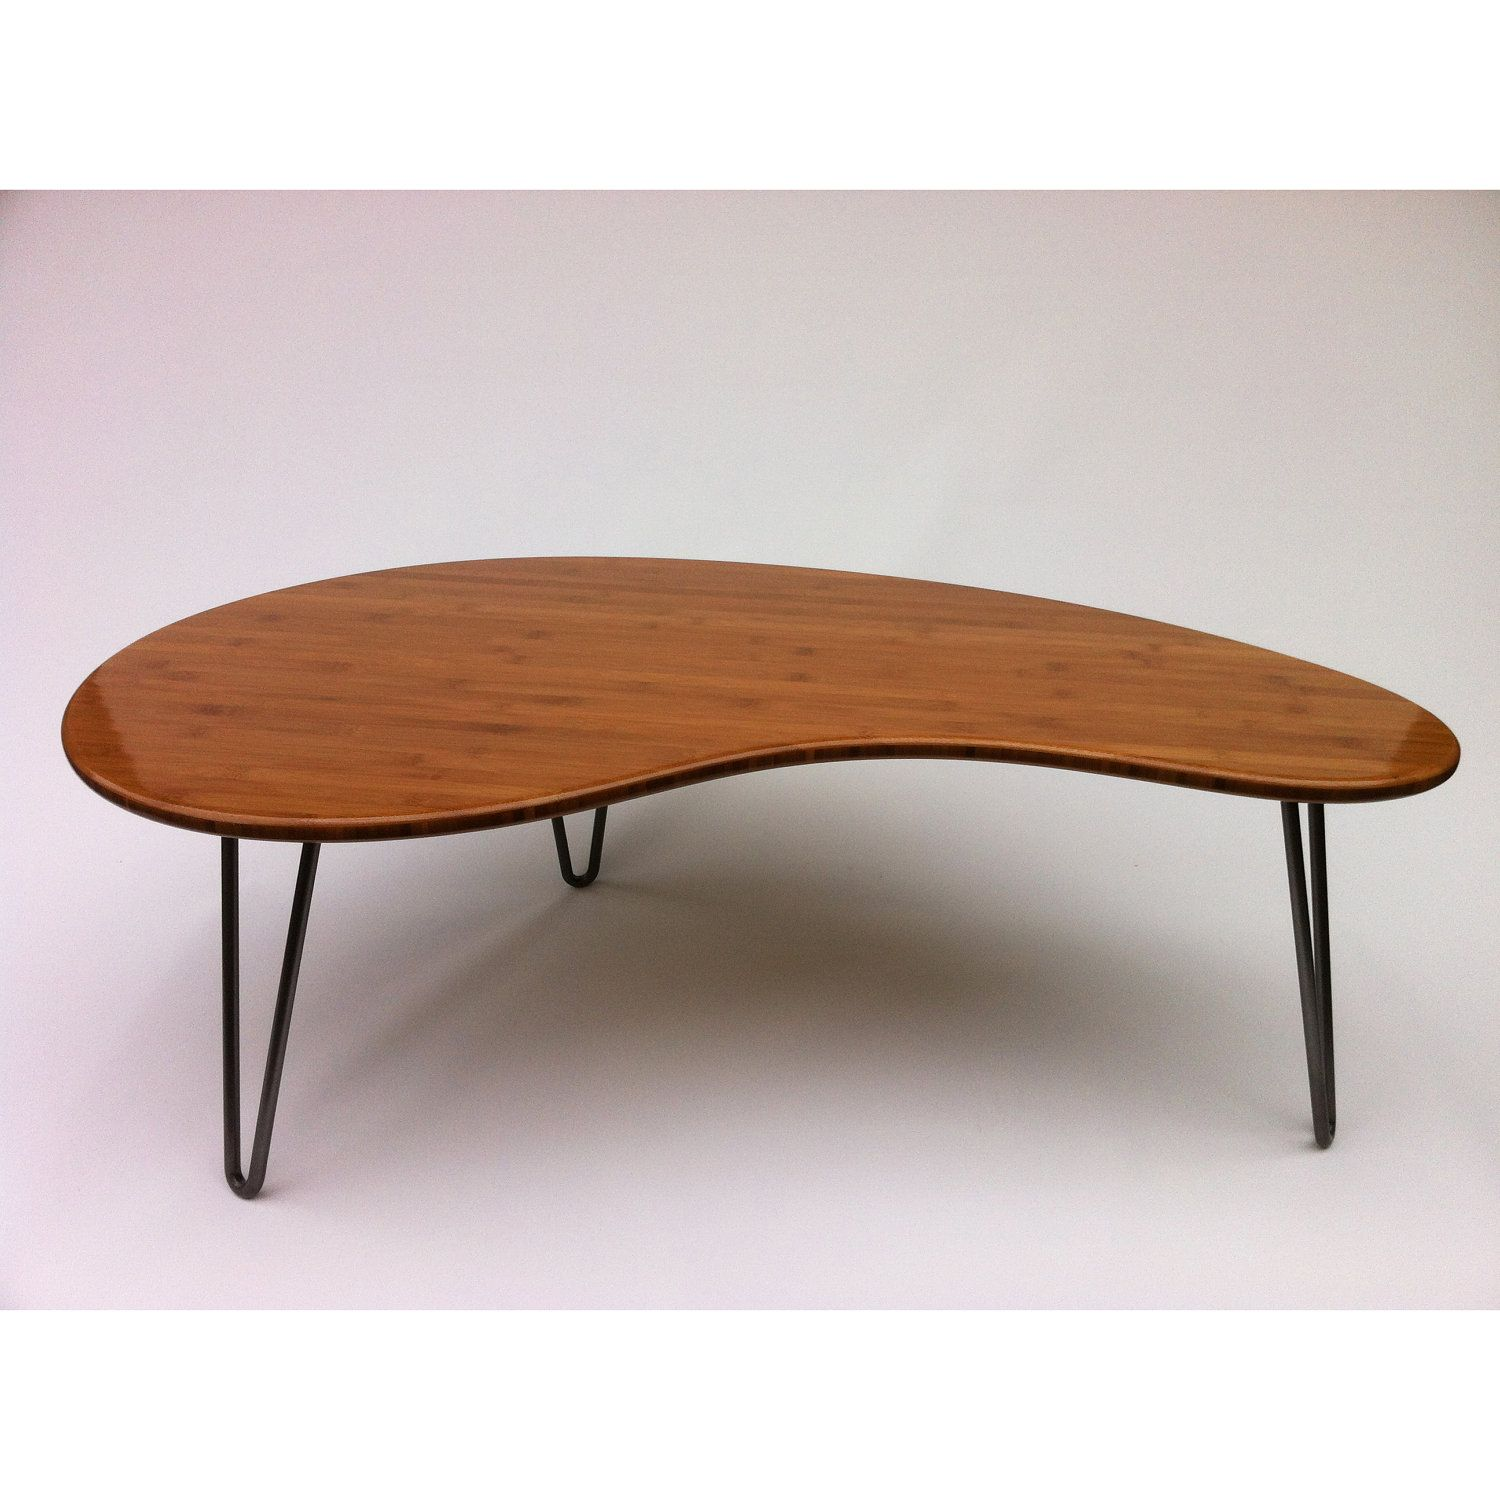 mid century modern coffee table - kidney bean shaped - cross grain